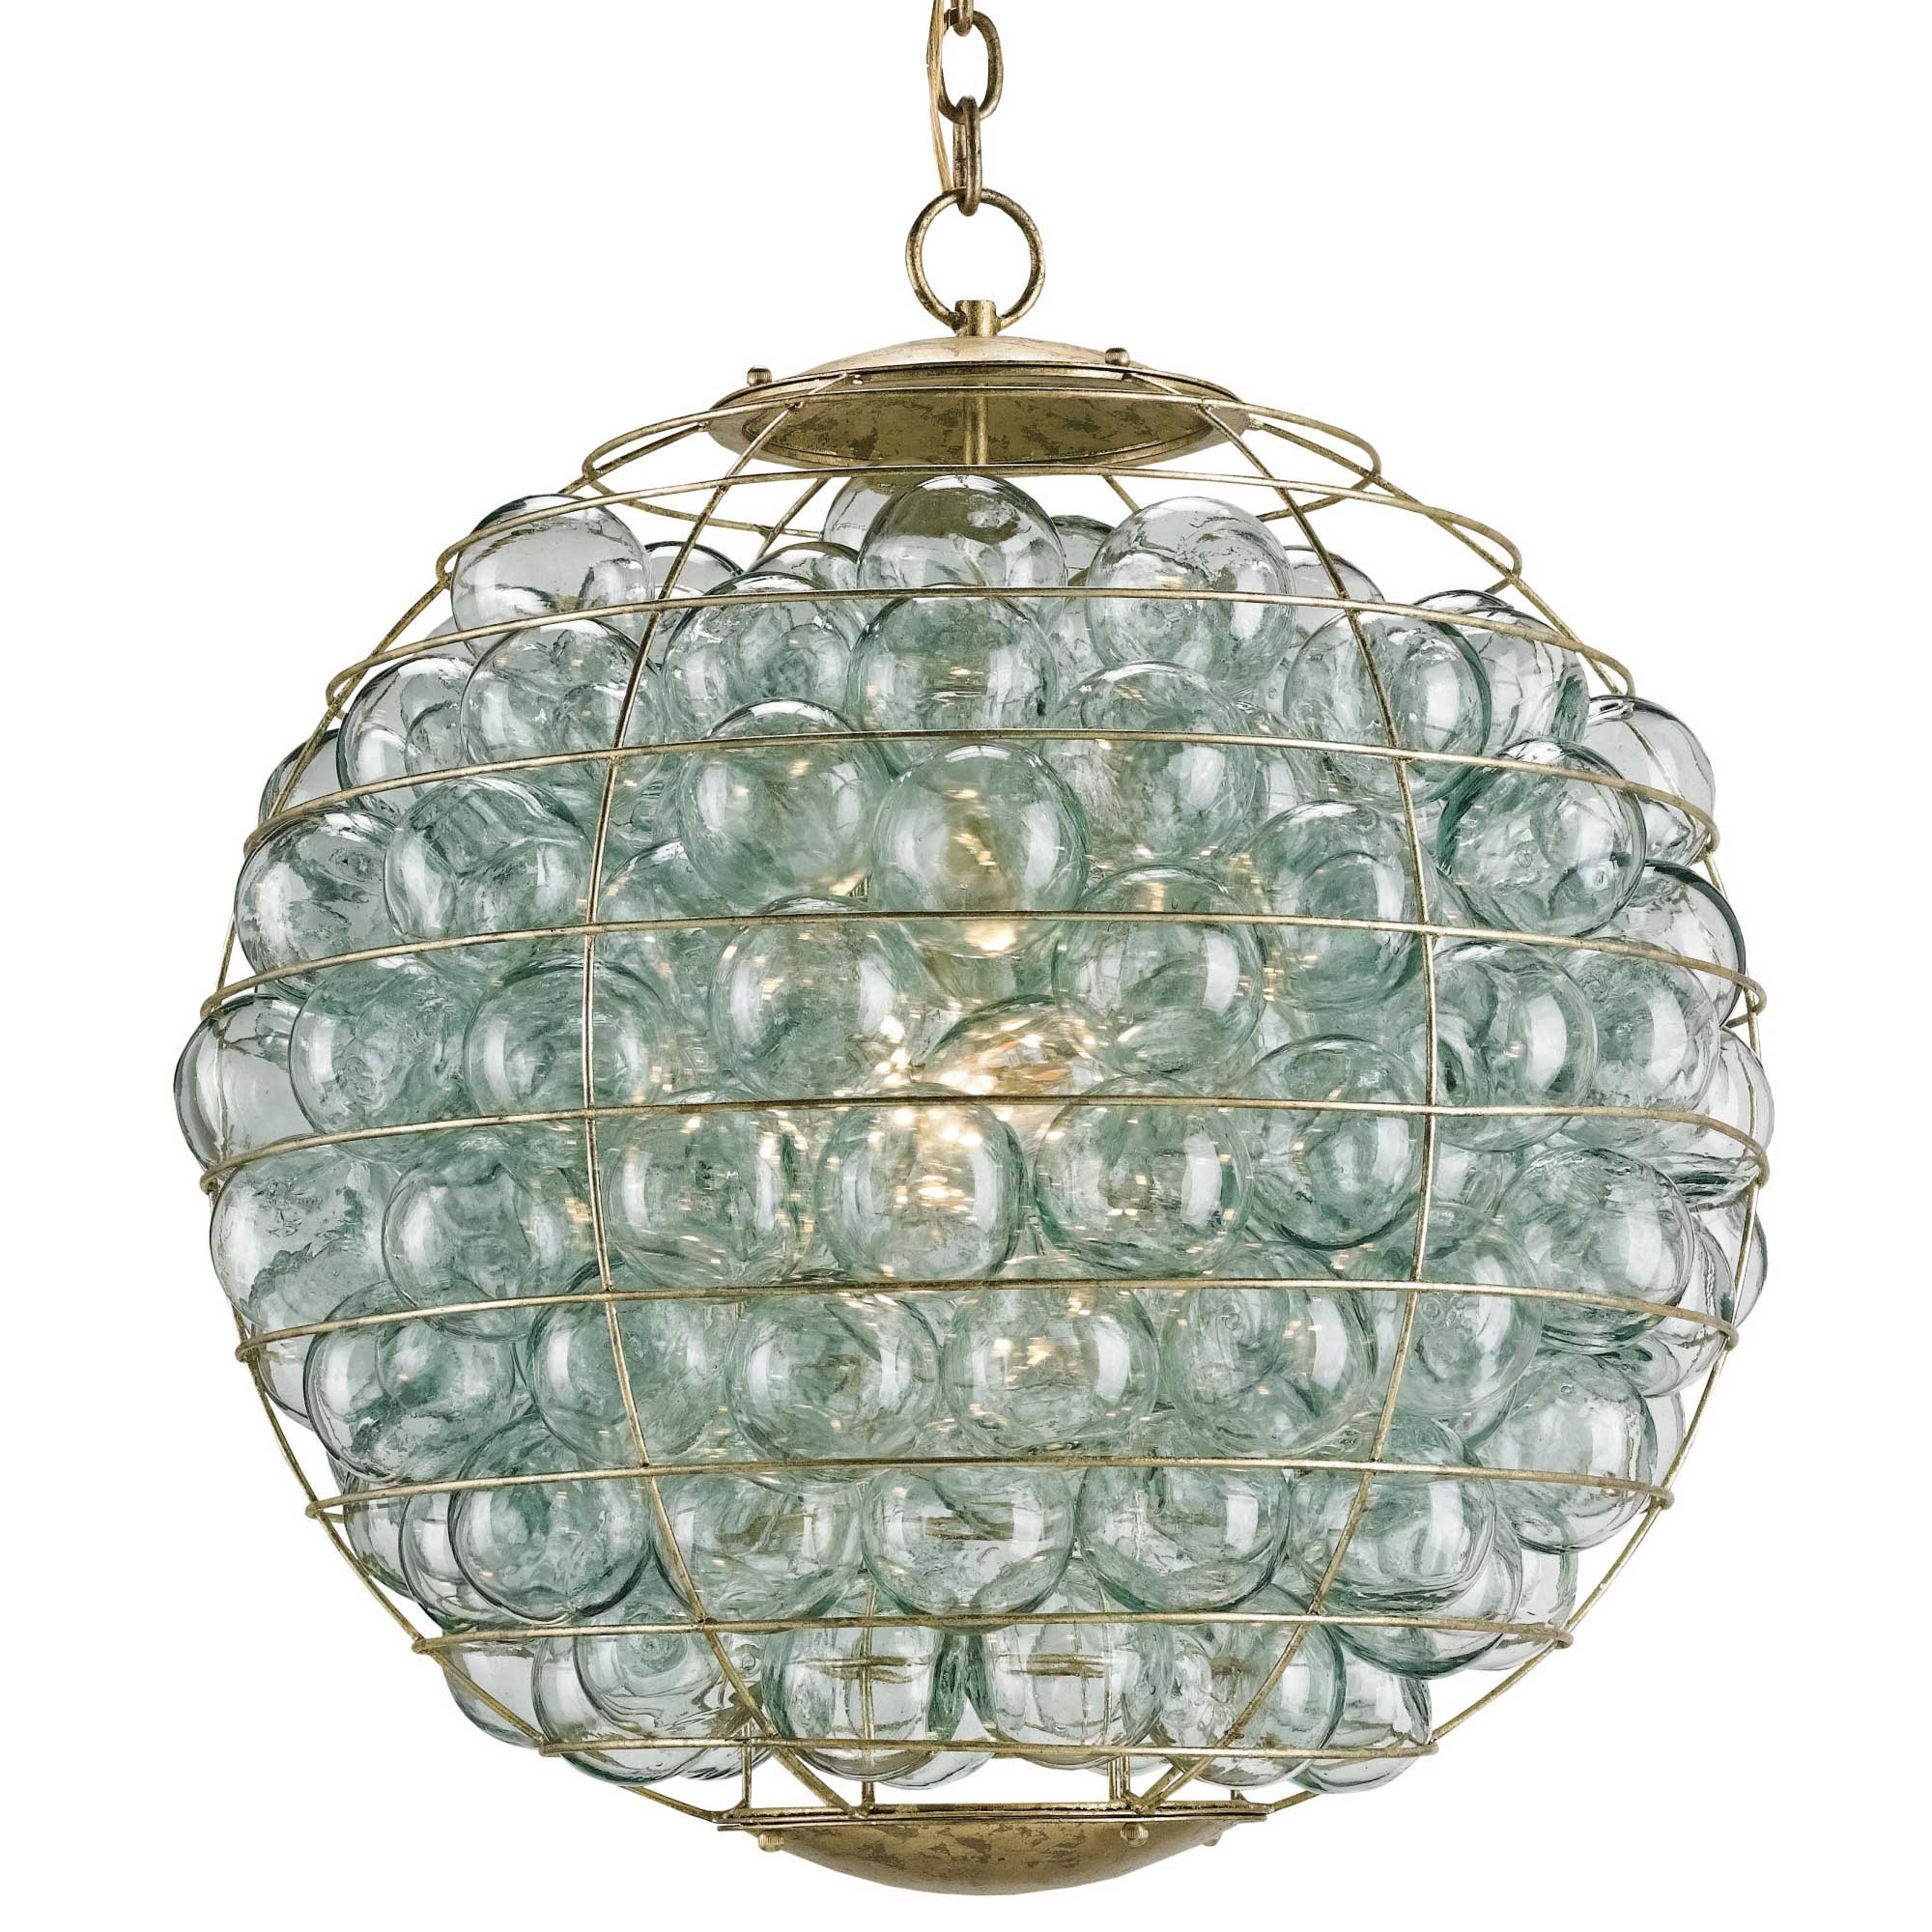 Currey And Company Orb Chandelier: Pastiche Orb Chandelier By Currey And Company